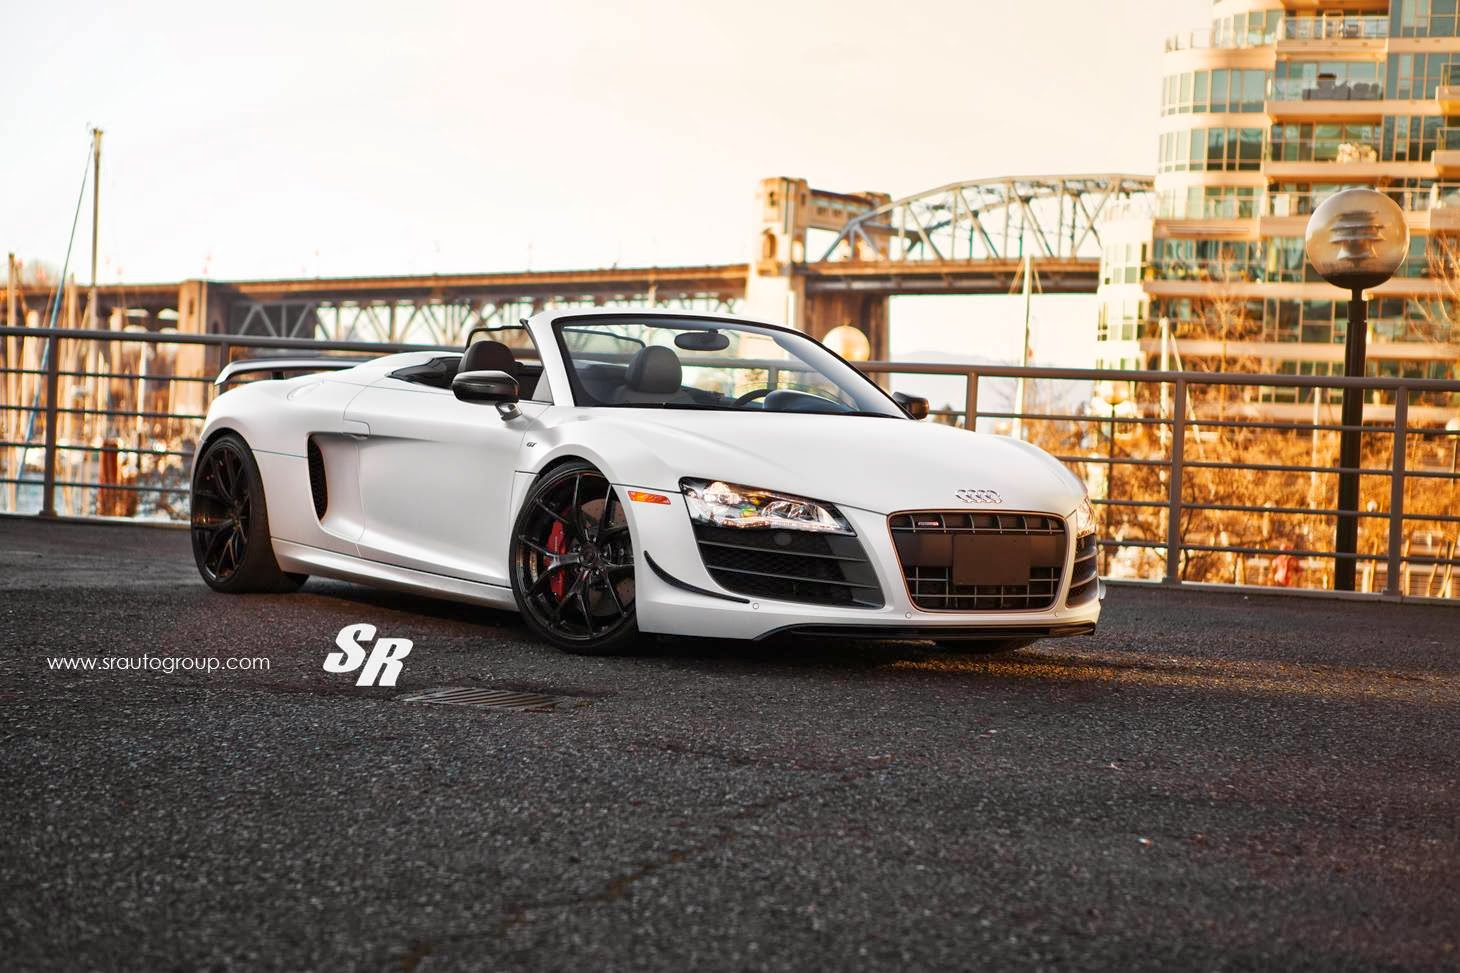 Limited edition Audi R8 GT Spyder with Black Diamond PUR Wheels Luxurious look